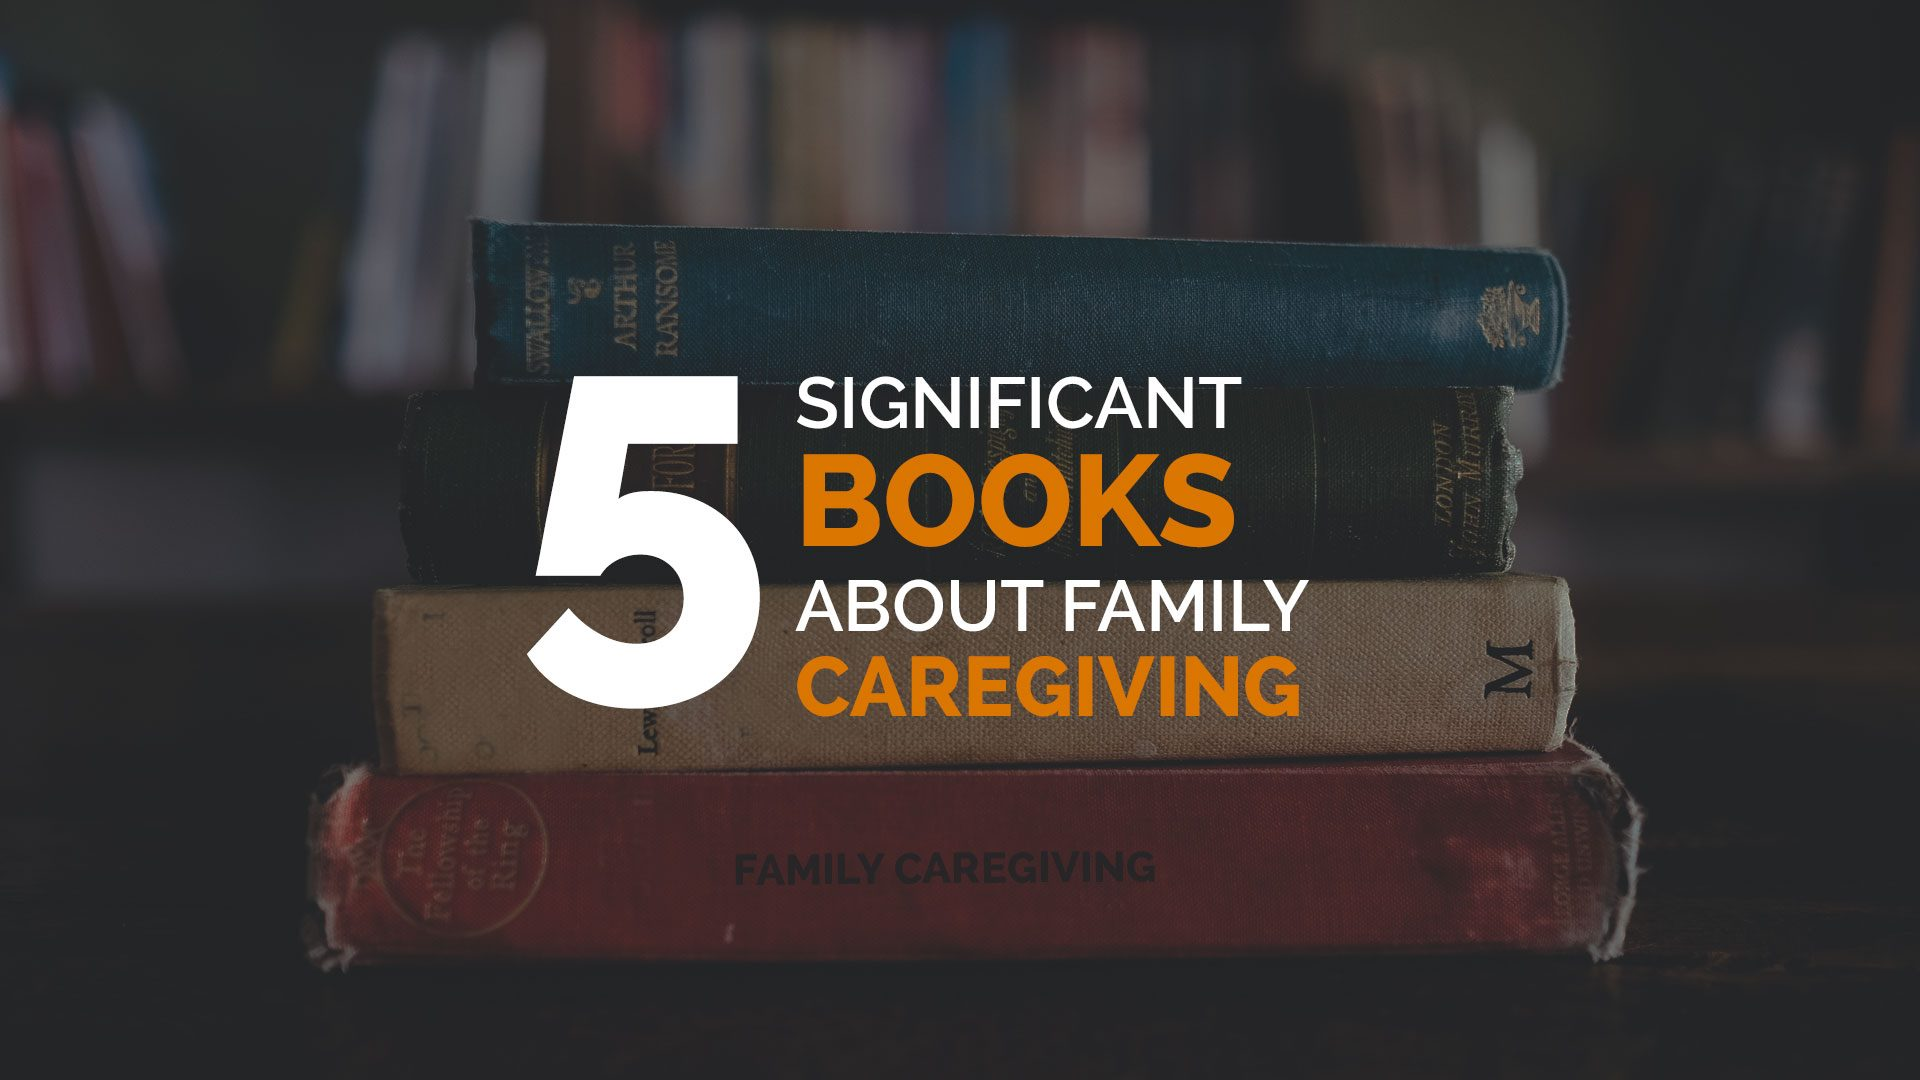 five significant books about family caregiving banner